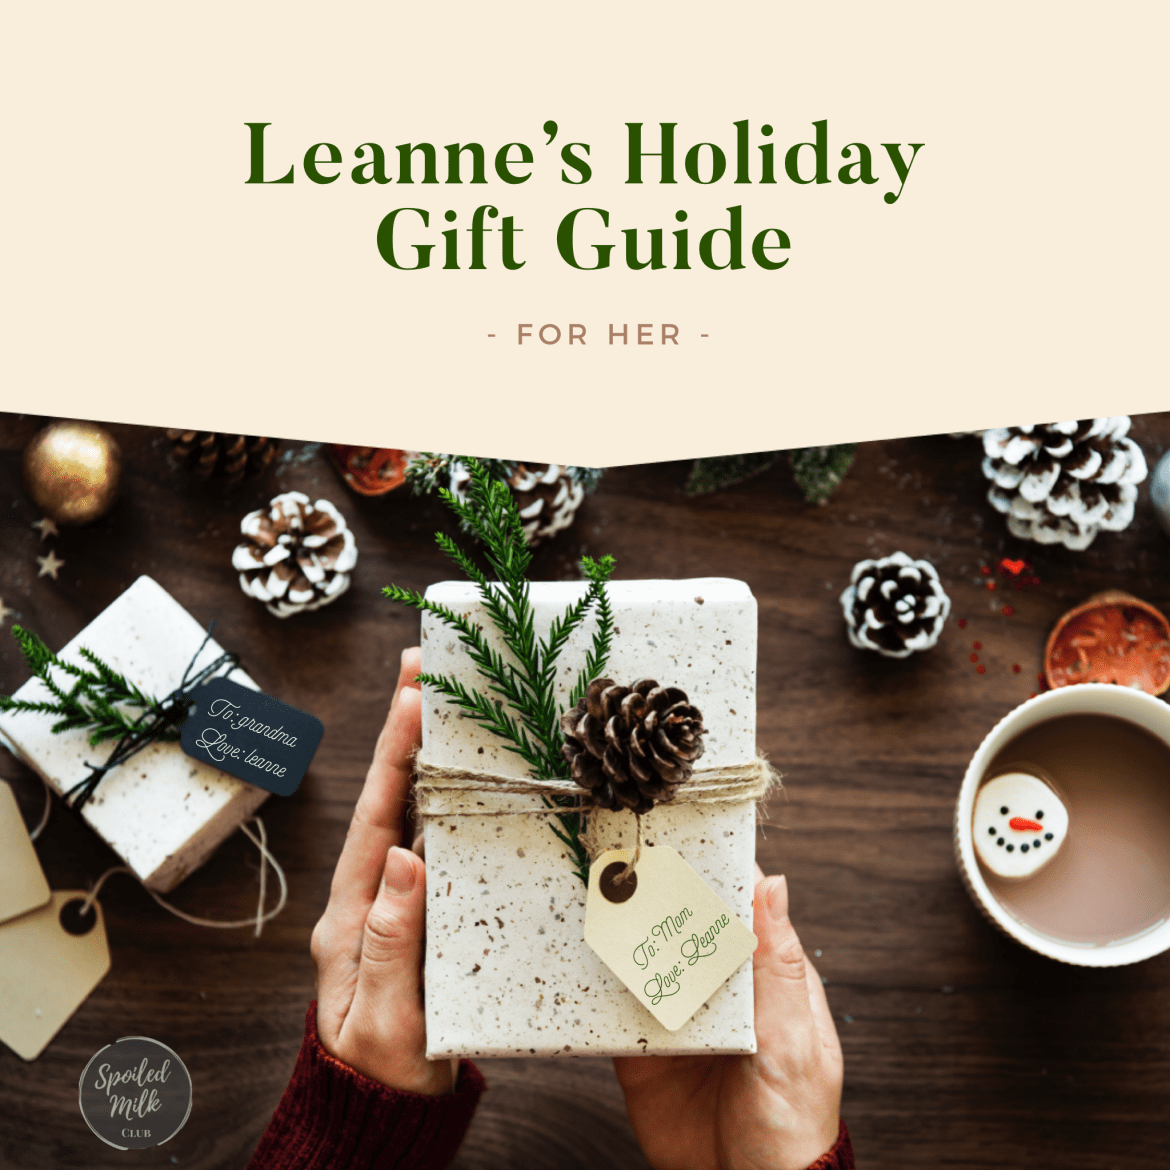 Leanne's Holiday Gift Guide (for her)